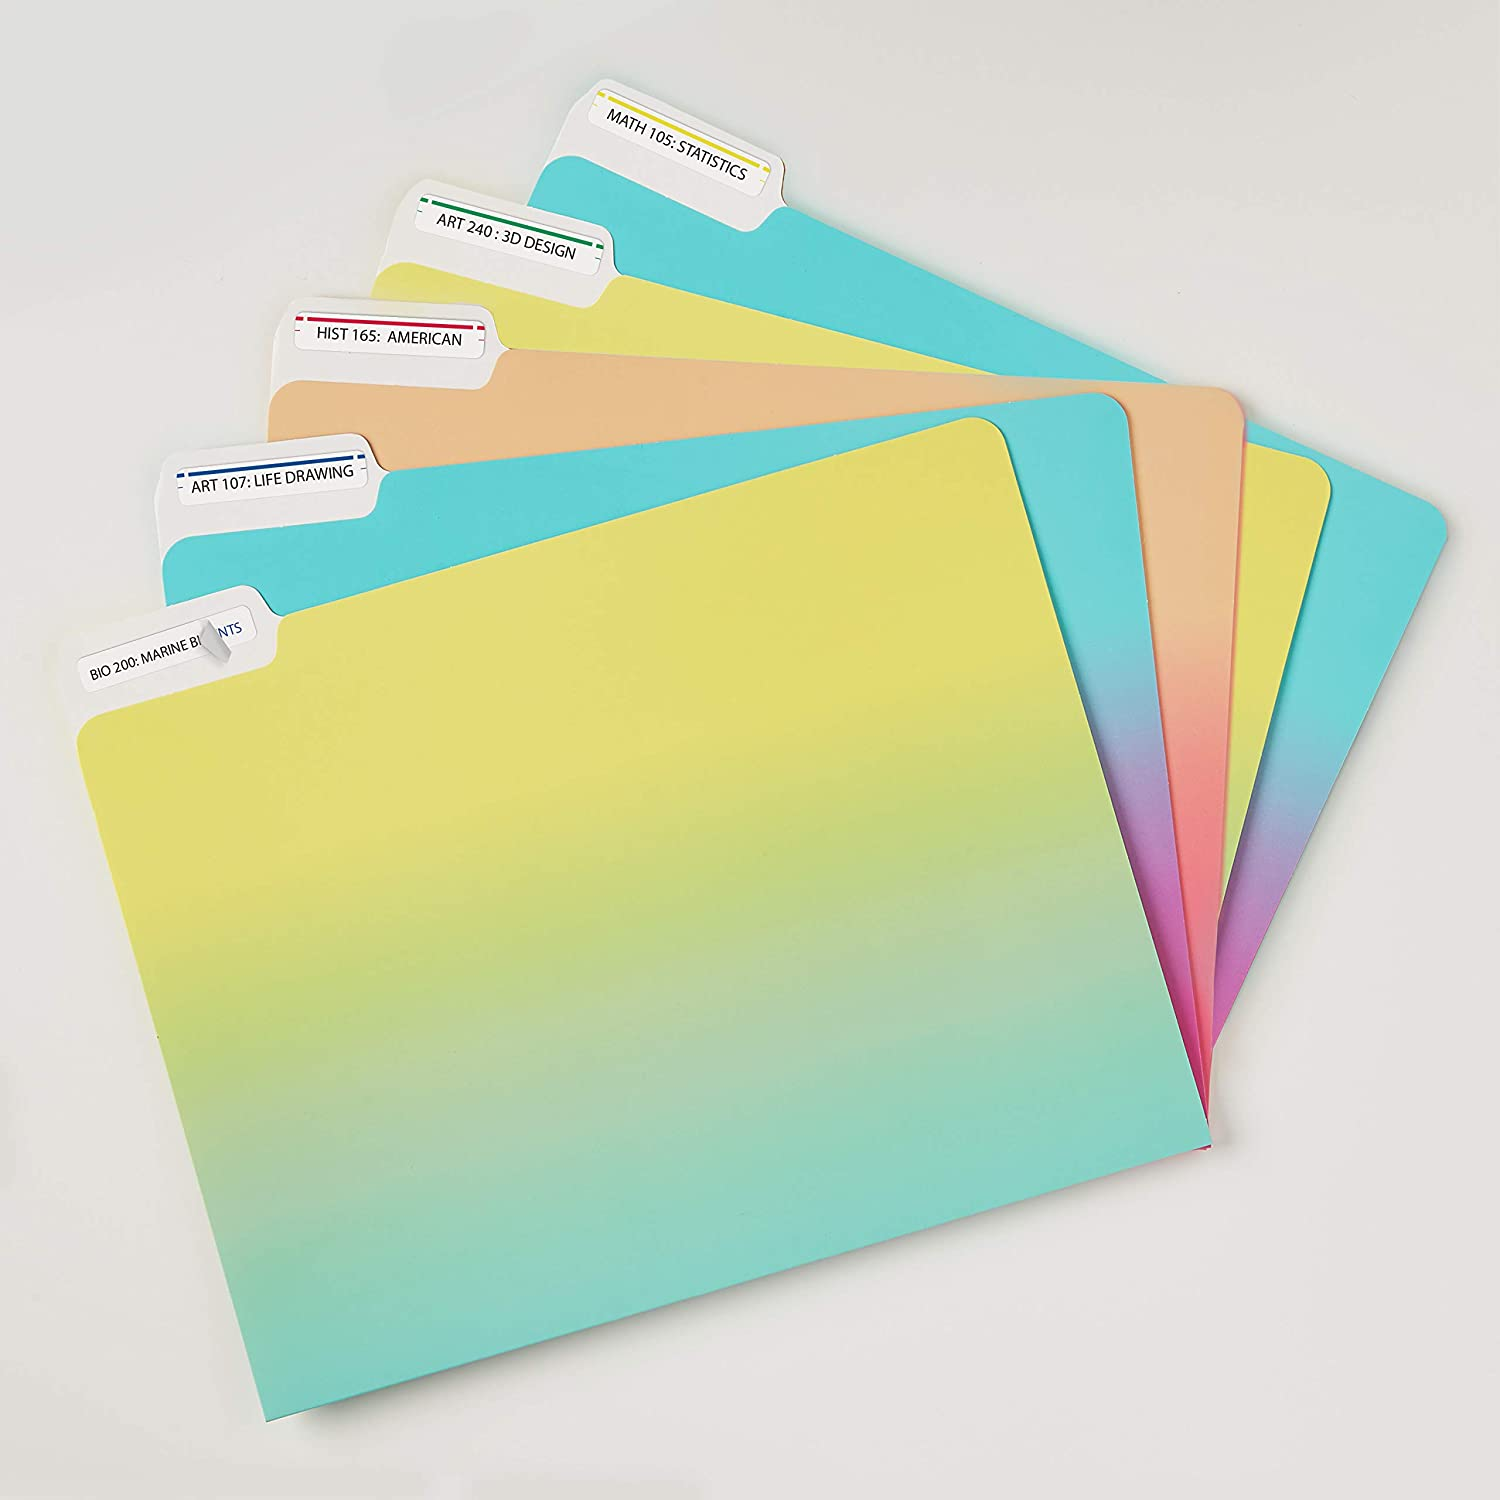 10 Packs Avery File Folder Labels in Assorted Colors for Laser and Inkjet Printers with TrueBlock Technology 0.67 x 3.43 Inches 5266